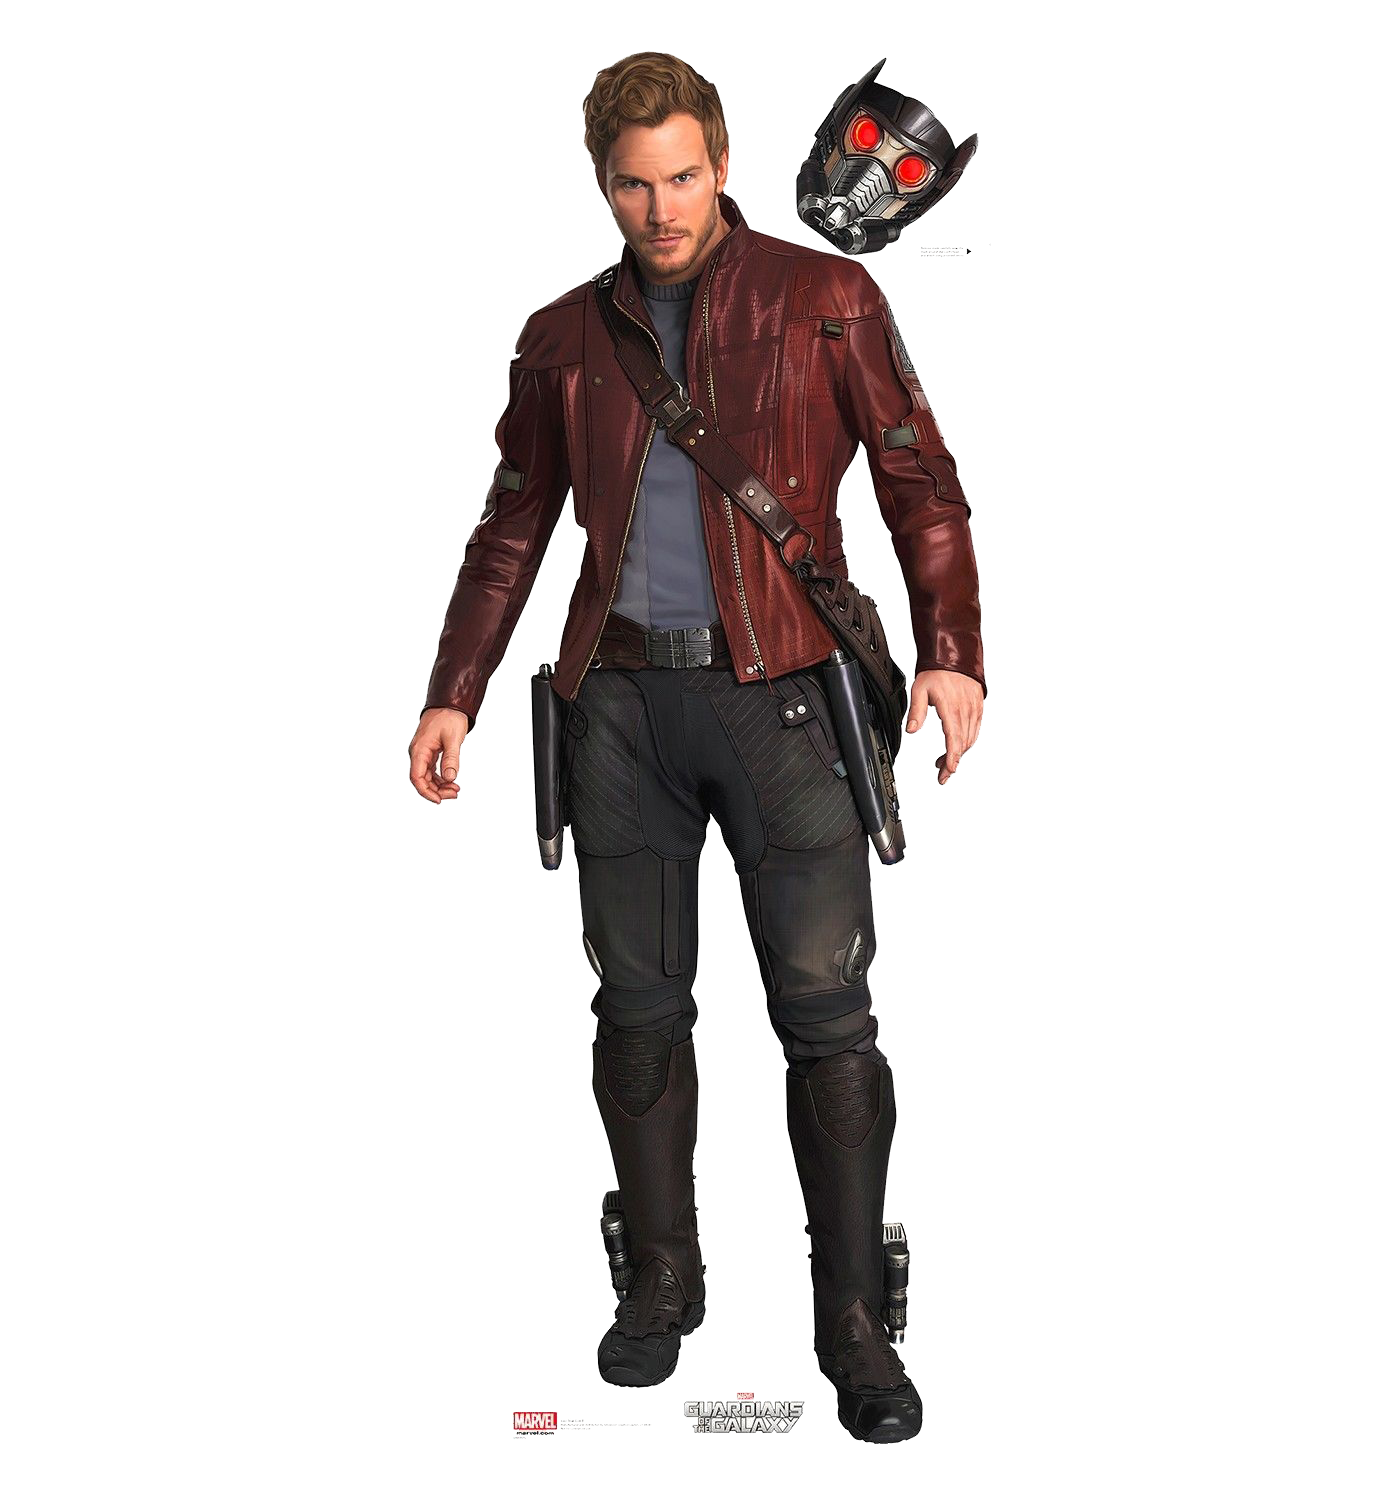 Star lord clipart clipart stock Download Star Lord HQ PNG Image | FreePNGImg clipart stock